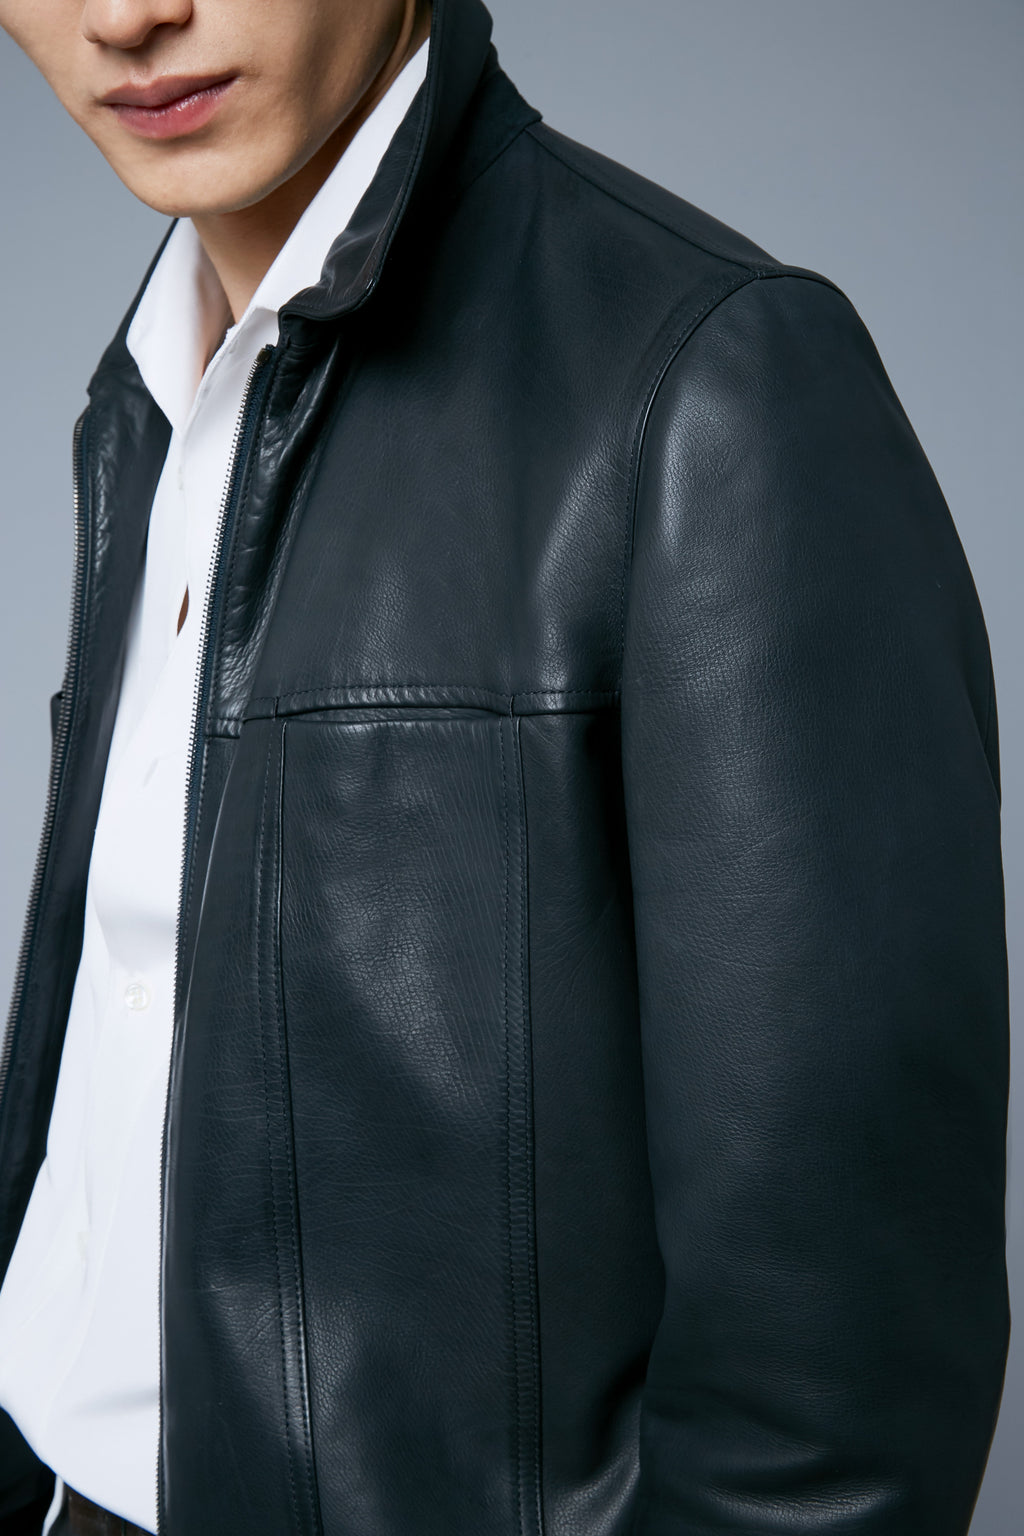 Detail View: Model Qiang Li wearing Leather Supple Jacket